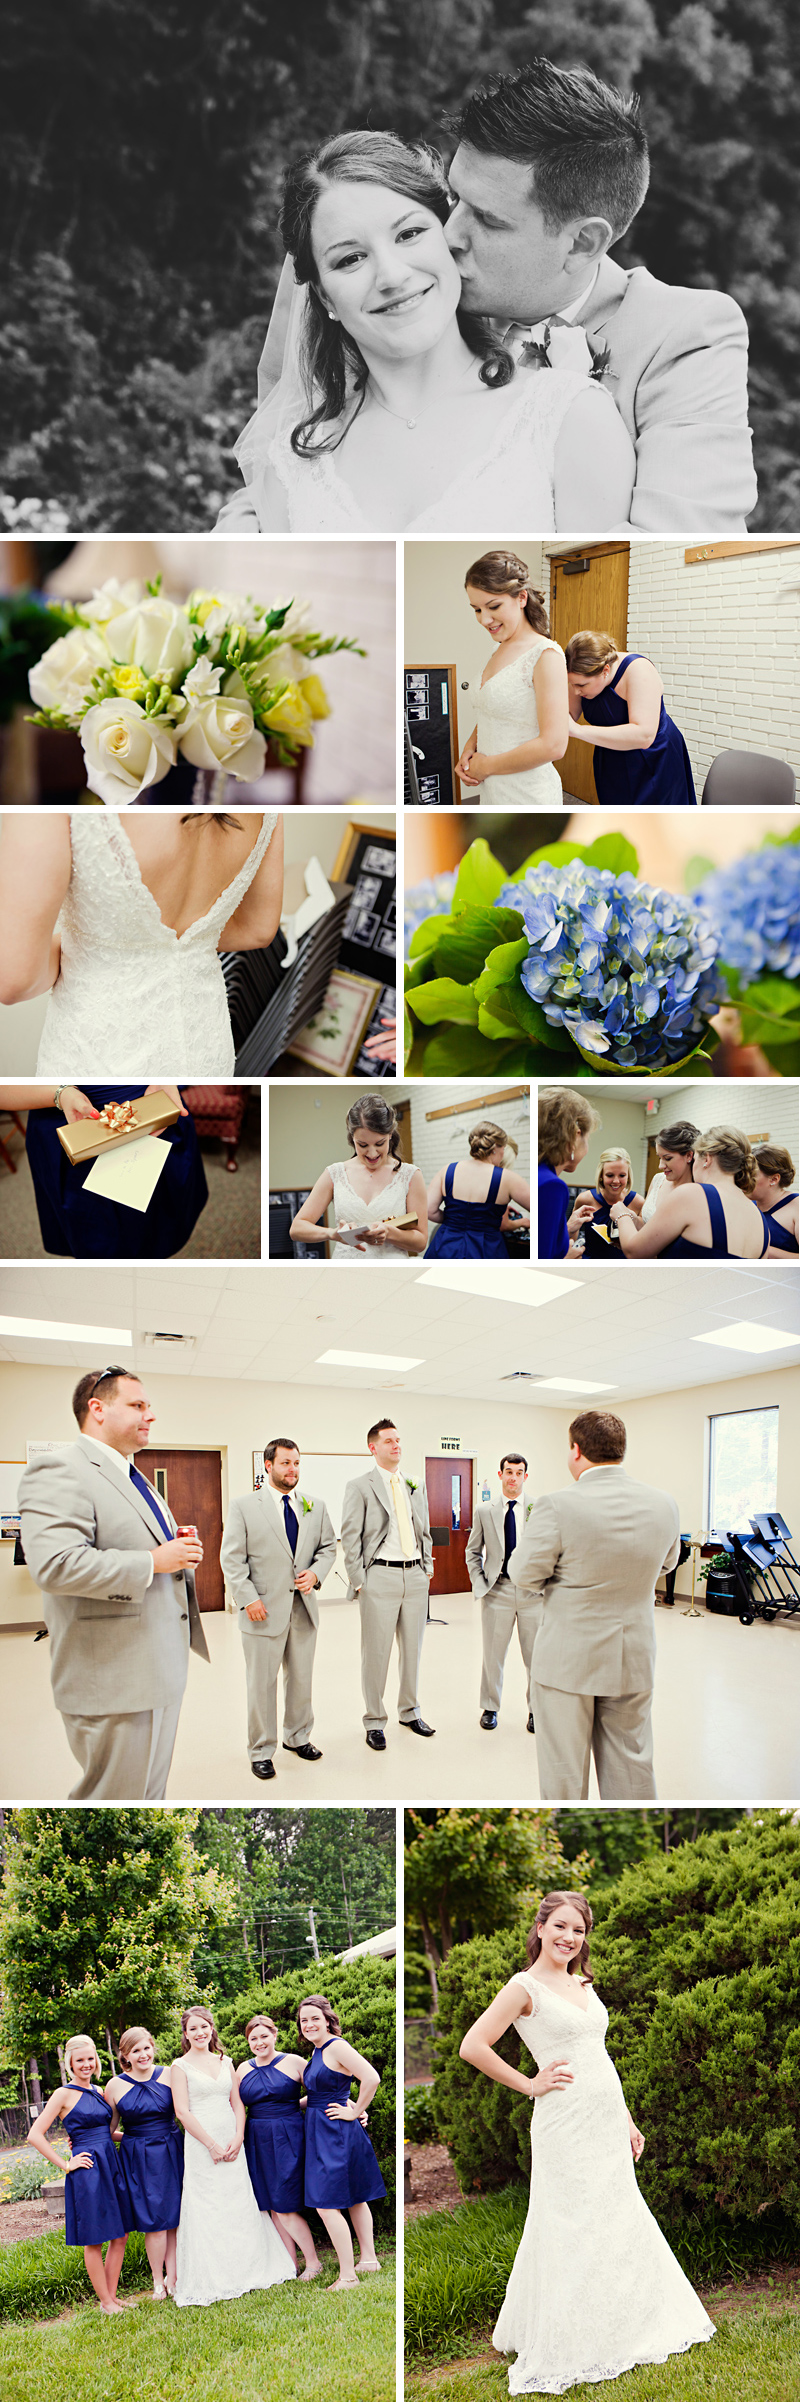 Raleigh-Wedding-Photographerc004